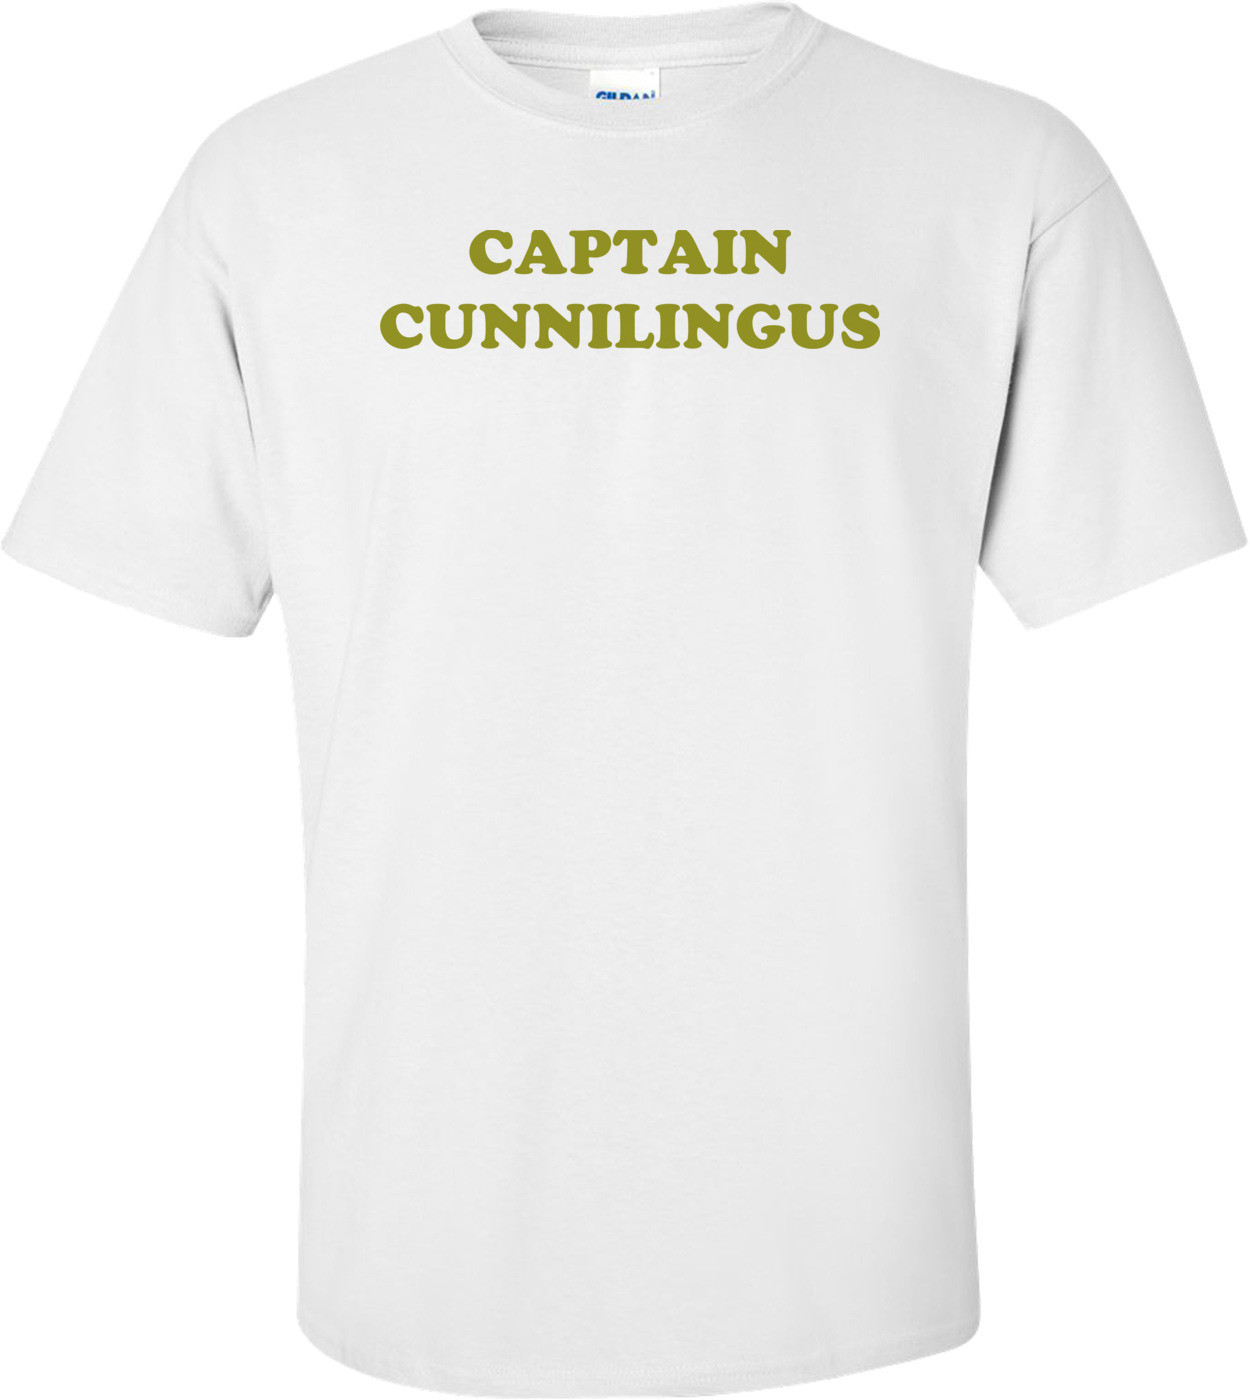 CAPTAIN CUNNILINGUS Shirt